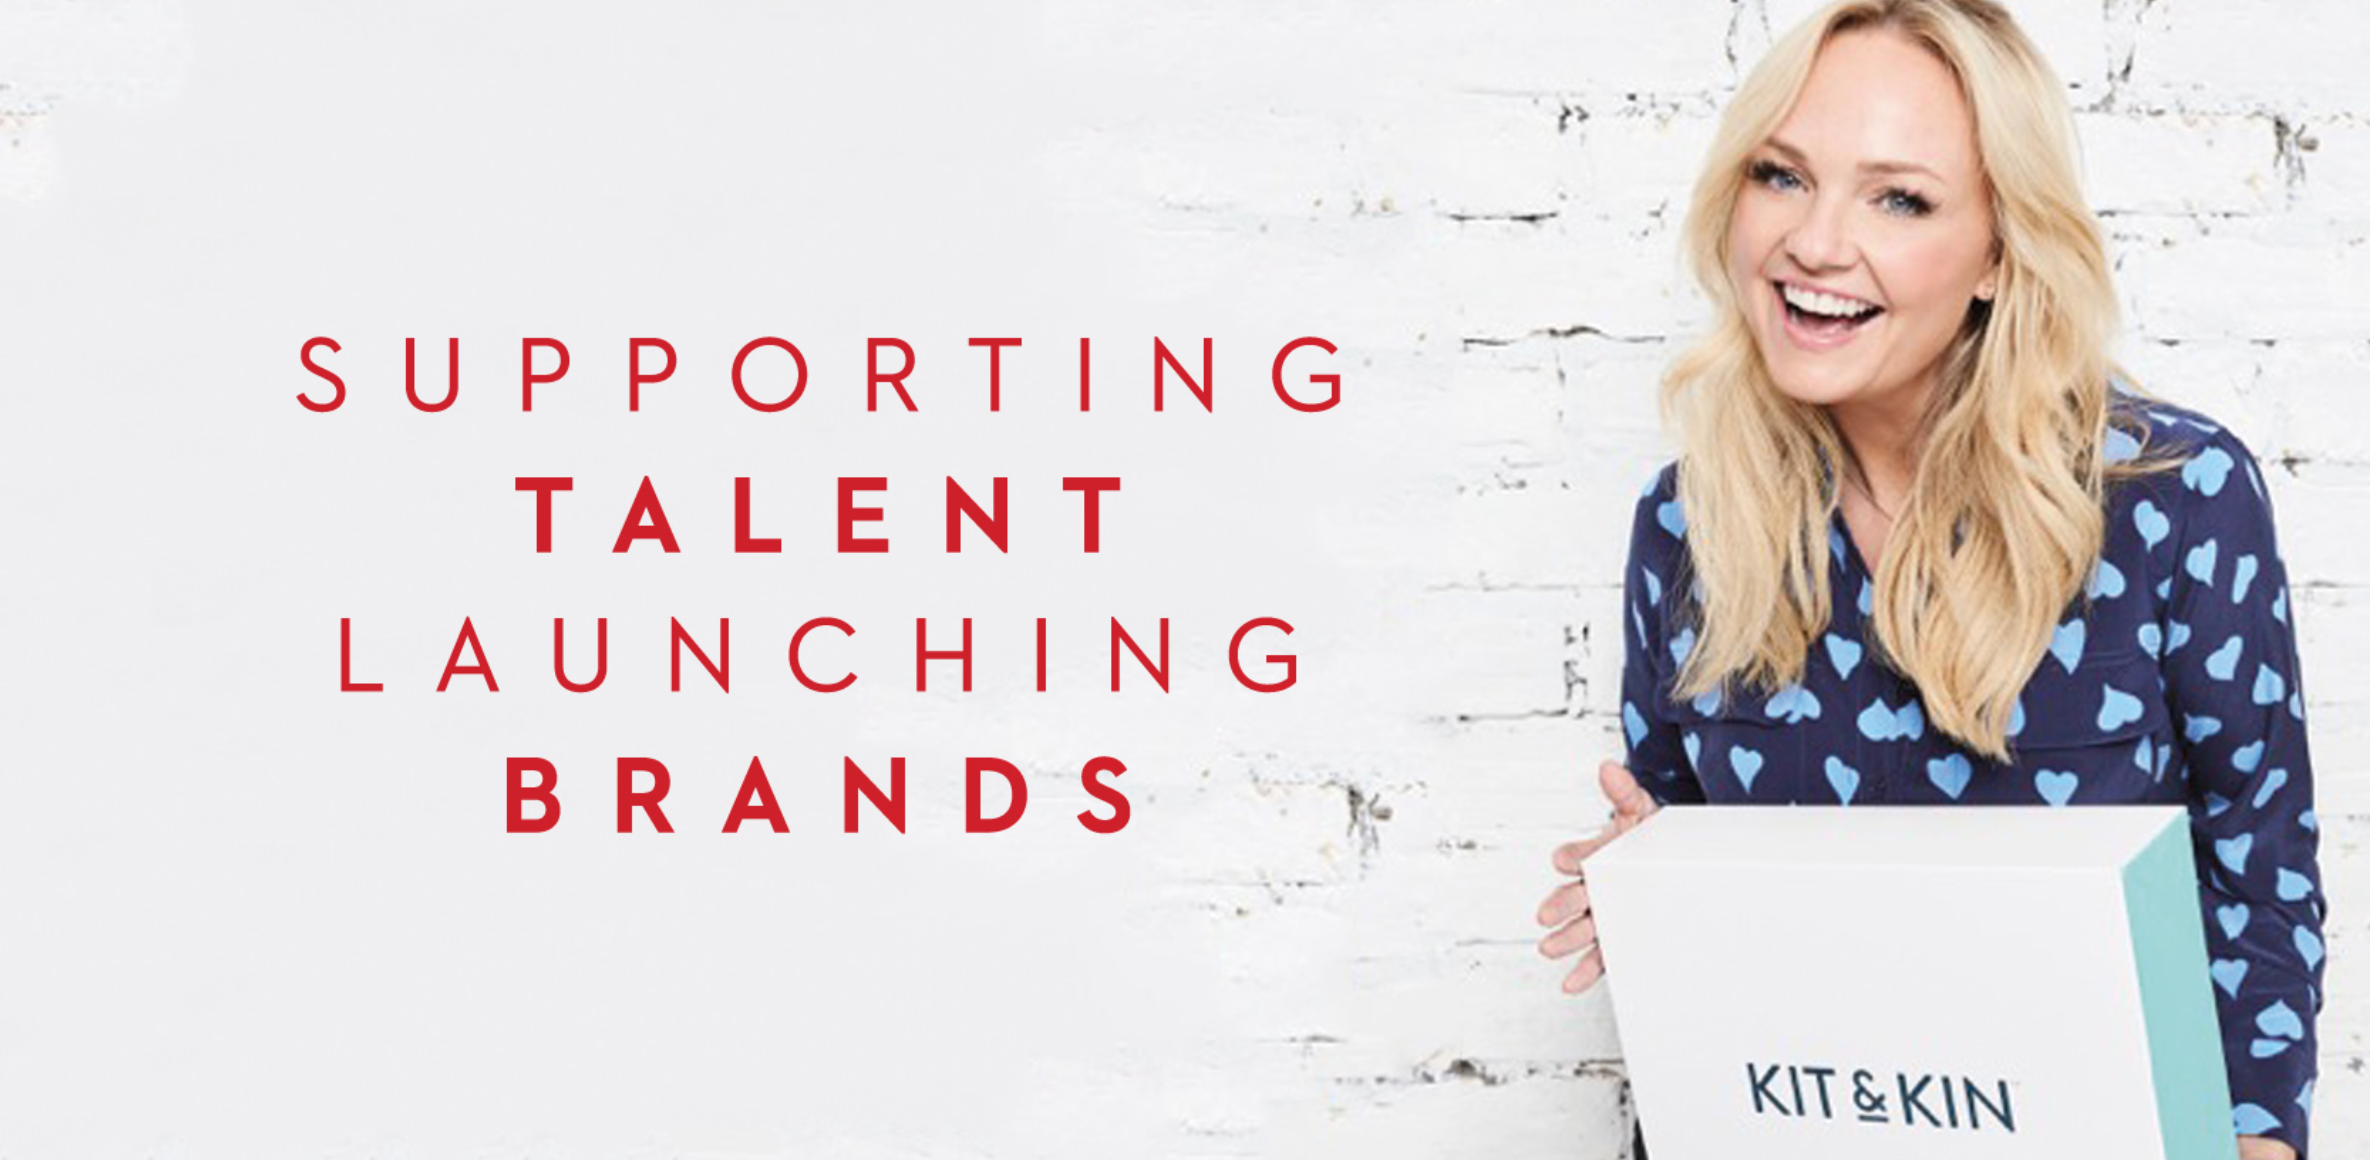 Giving celebrity brands star power - Words for an influencer brand agency